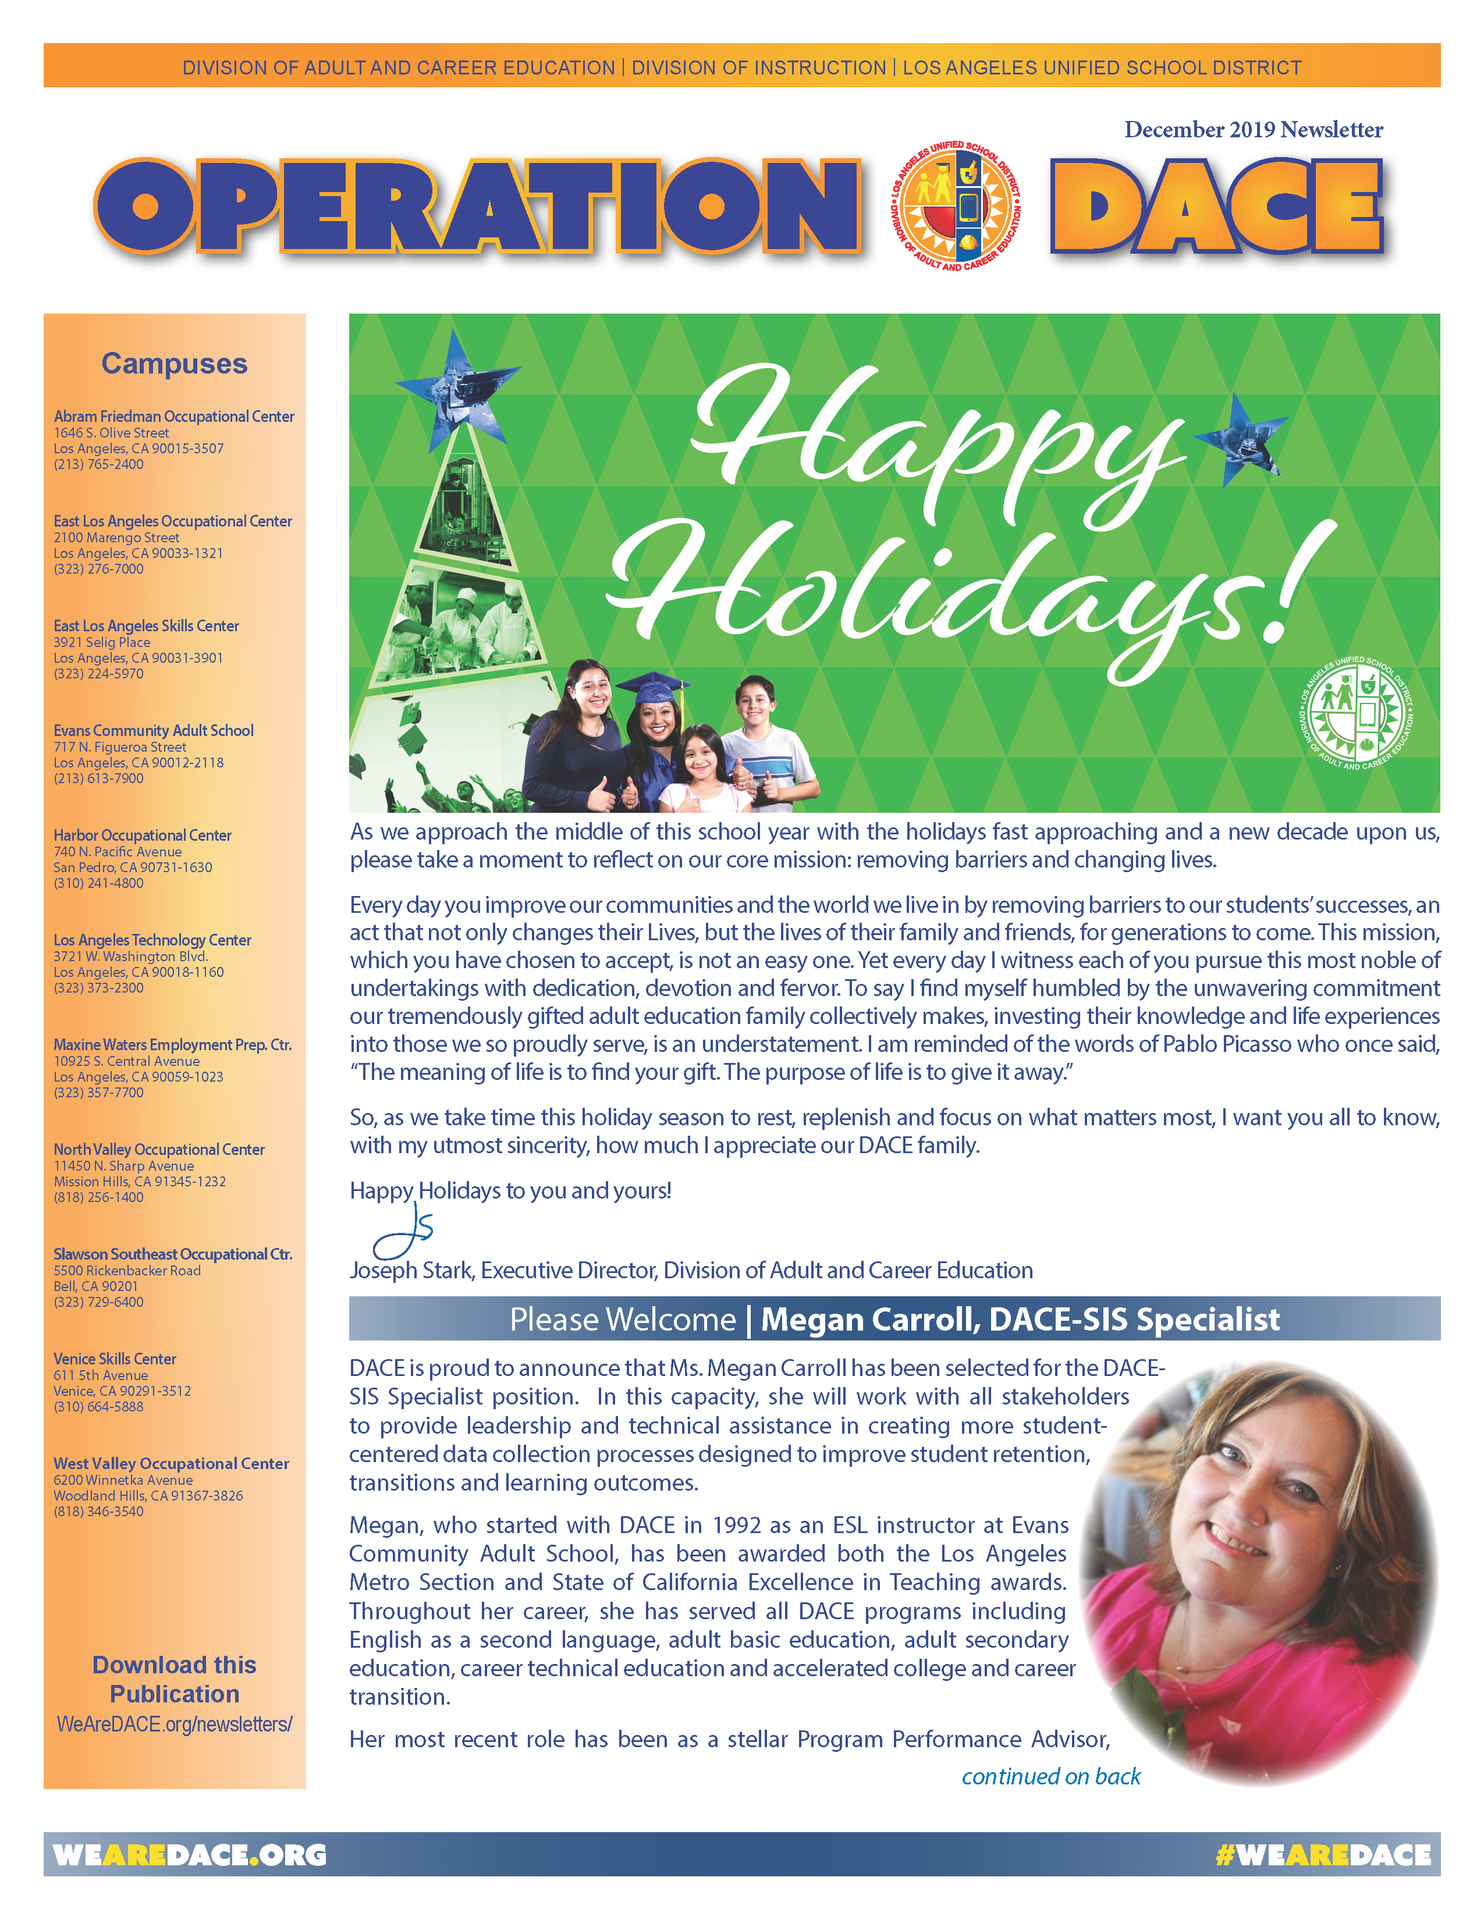 DACE Operations Newsletter - December 2019